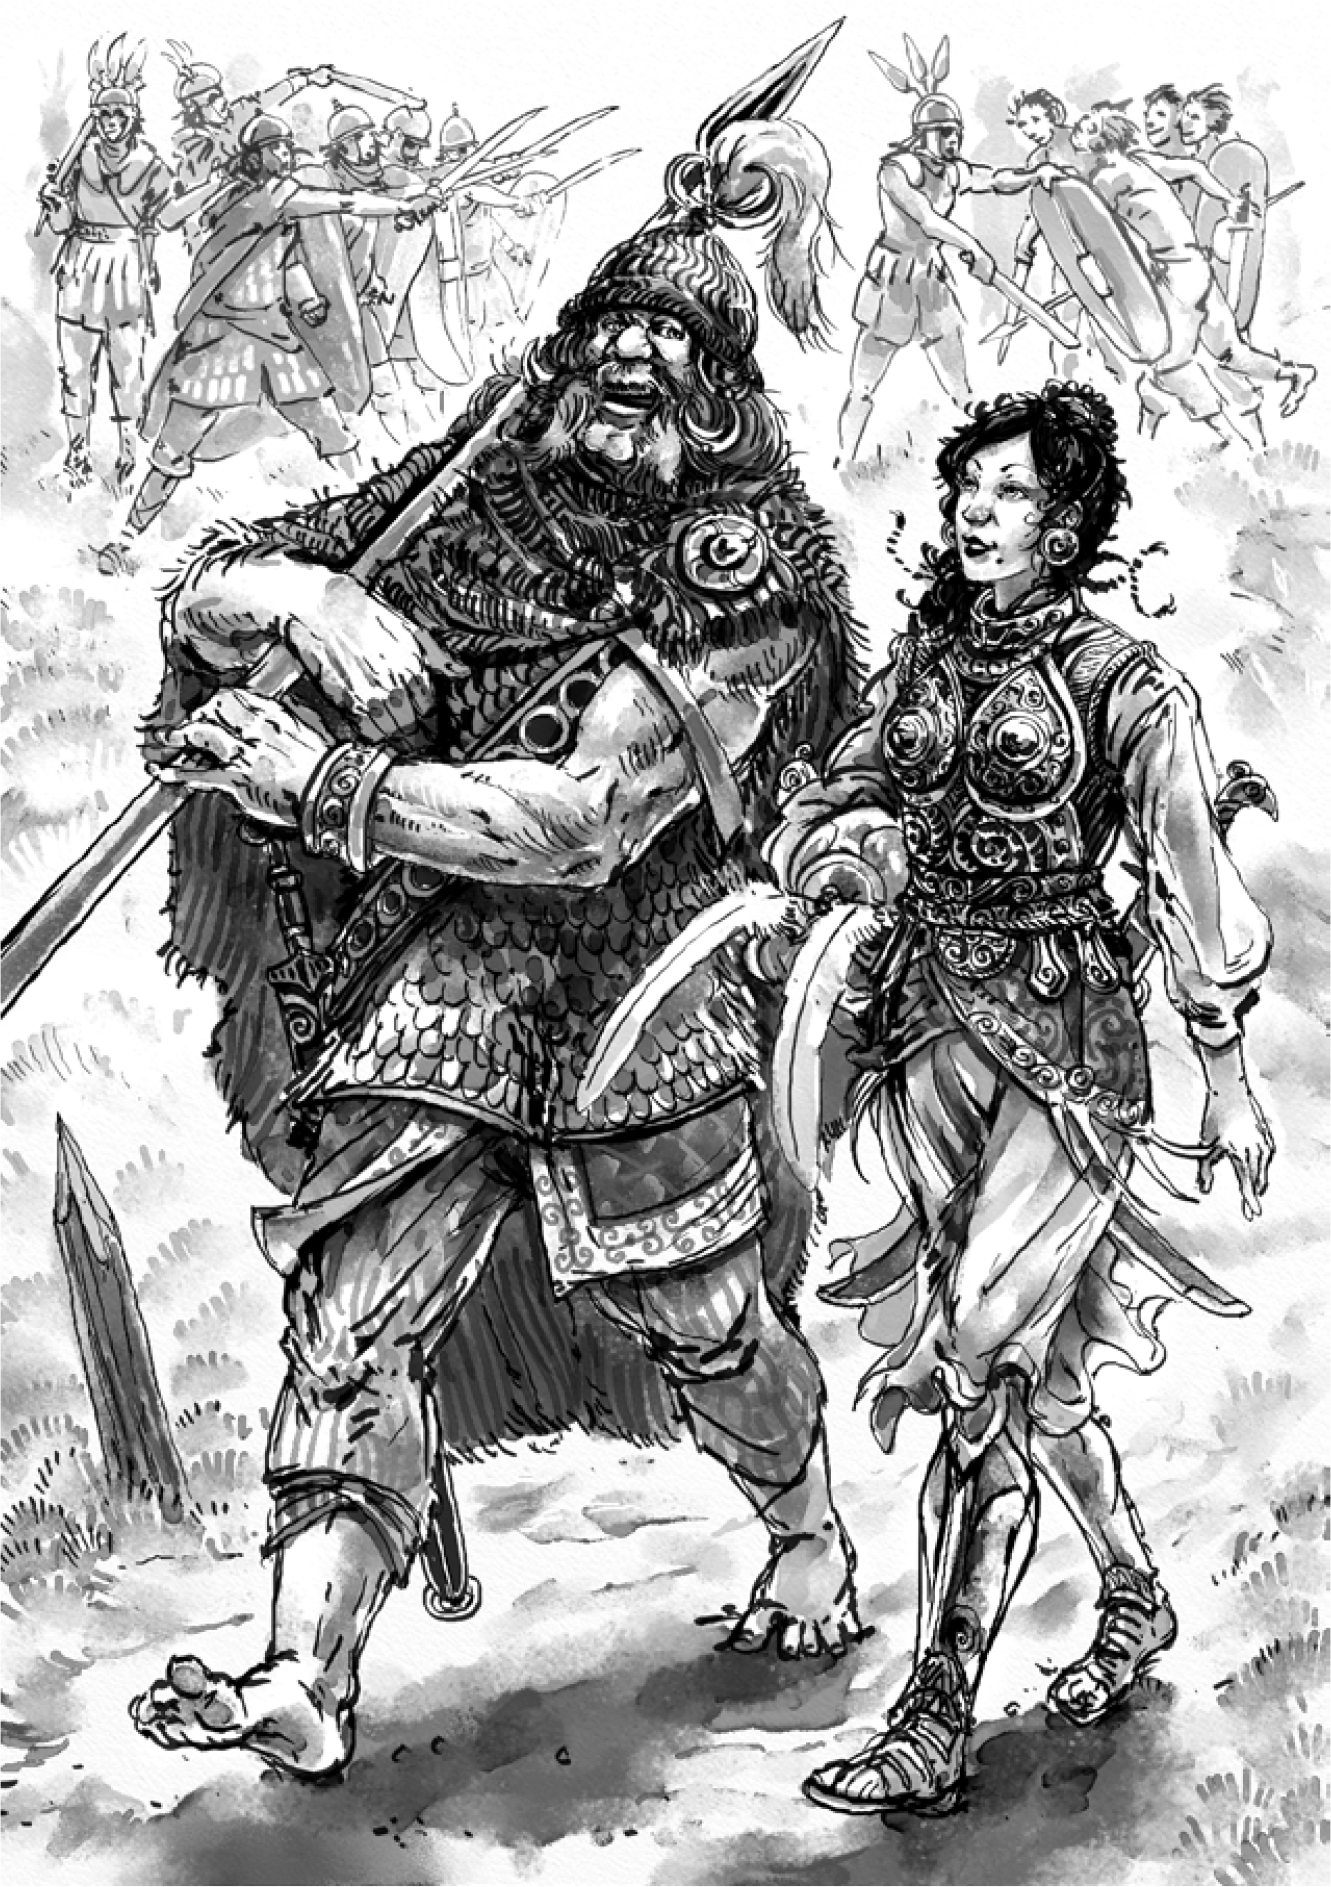 Two Warriors in Glorantha